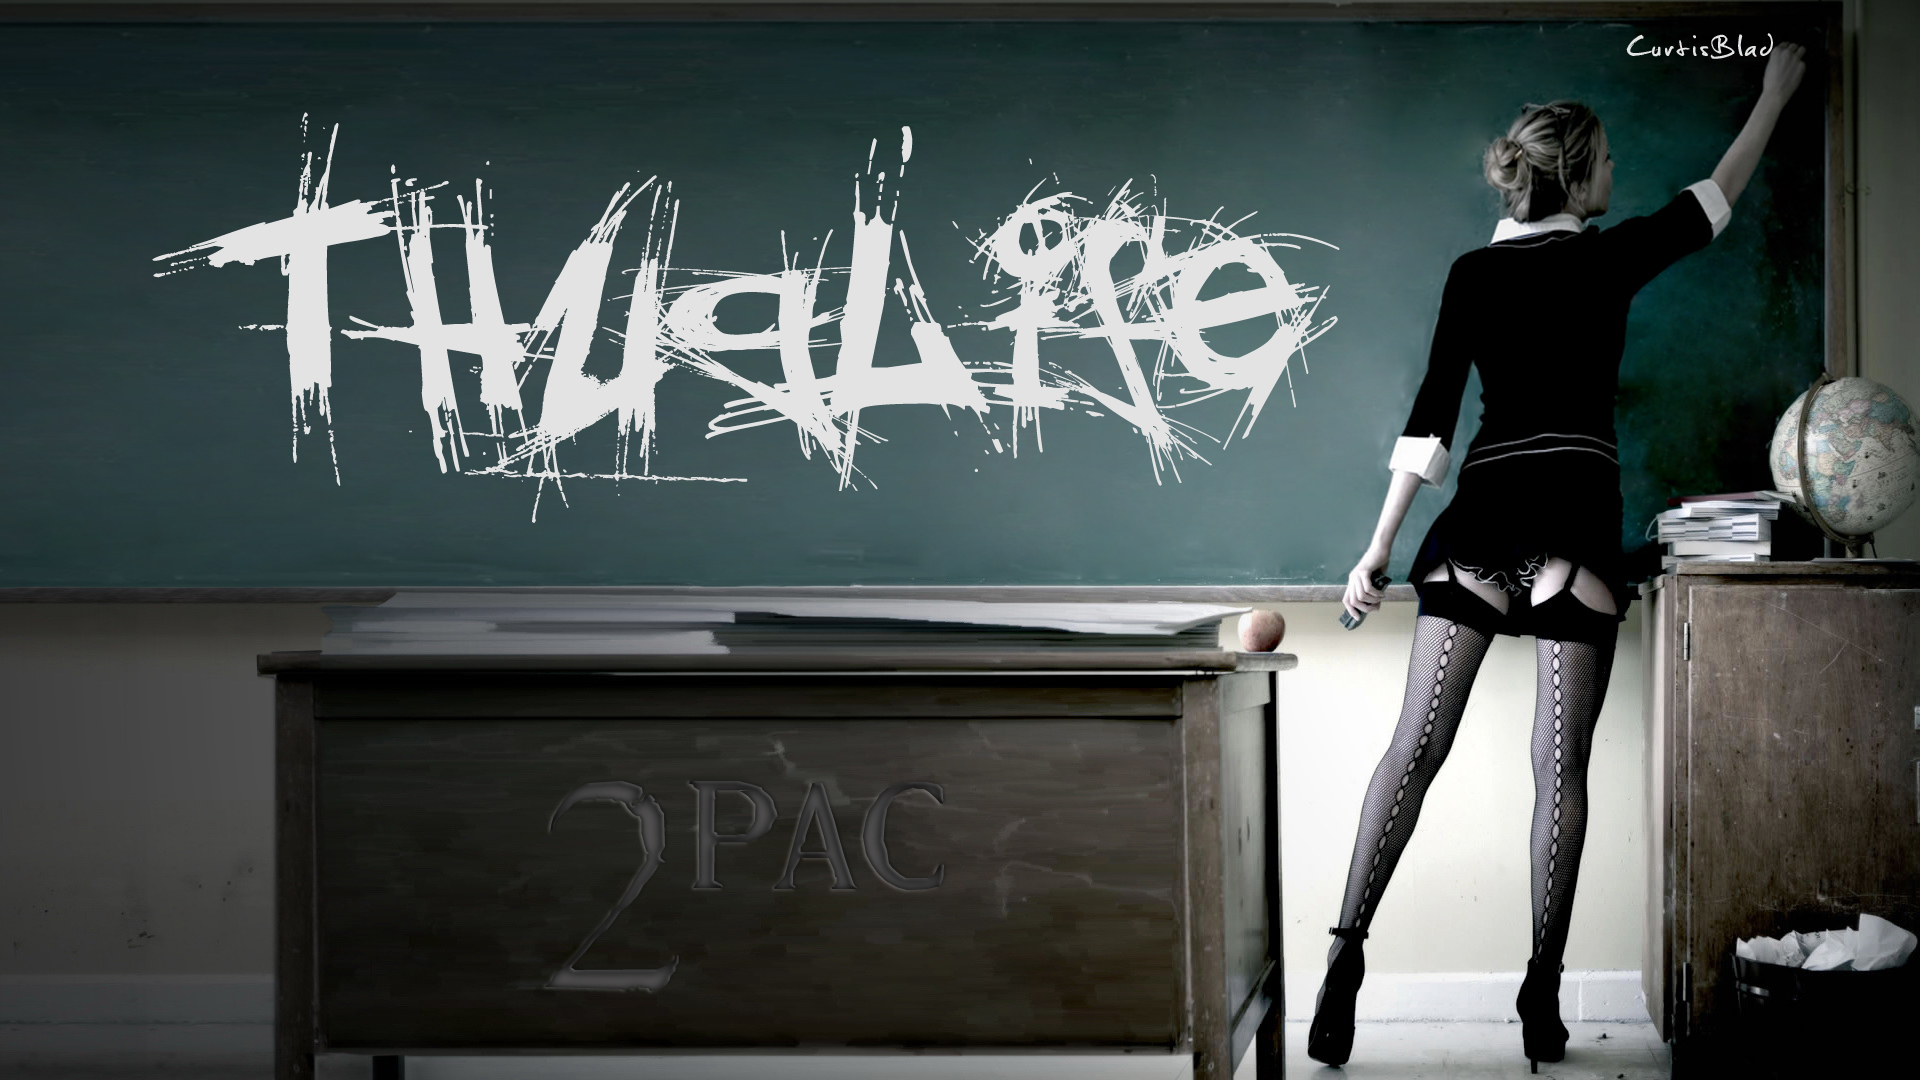 Thug life and favorite teacher by curtisblade 1920x1080